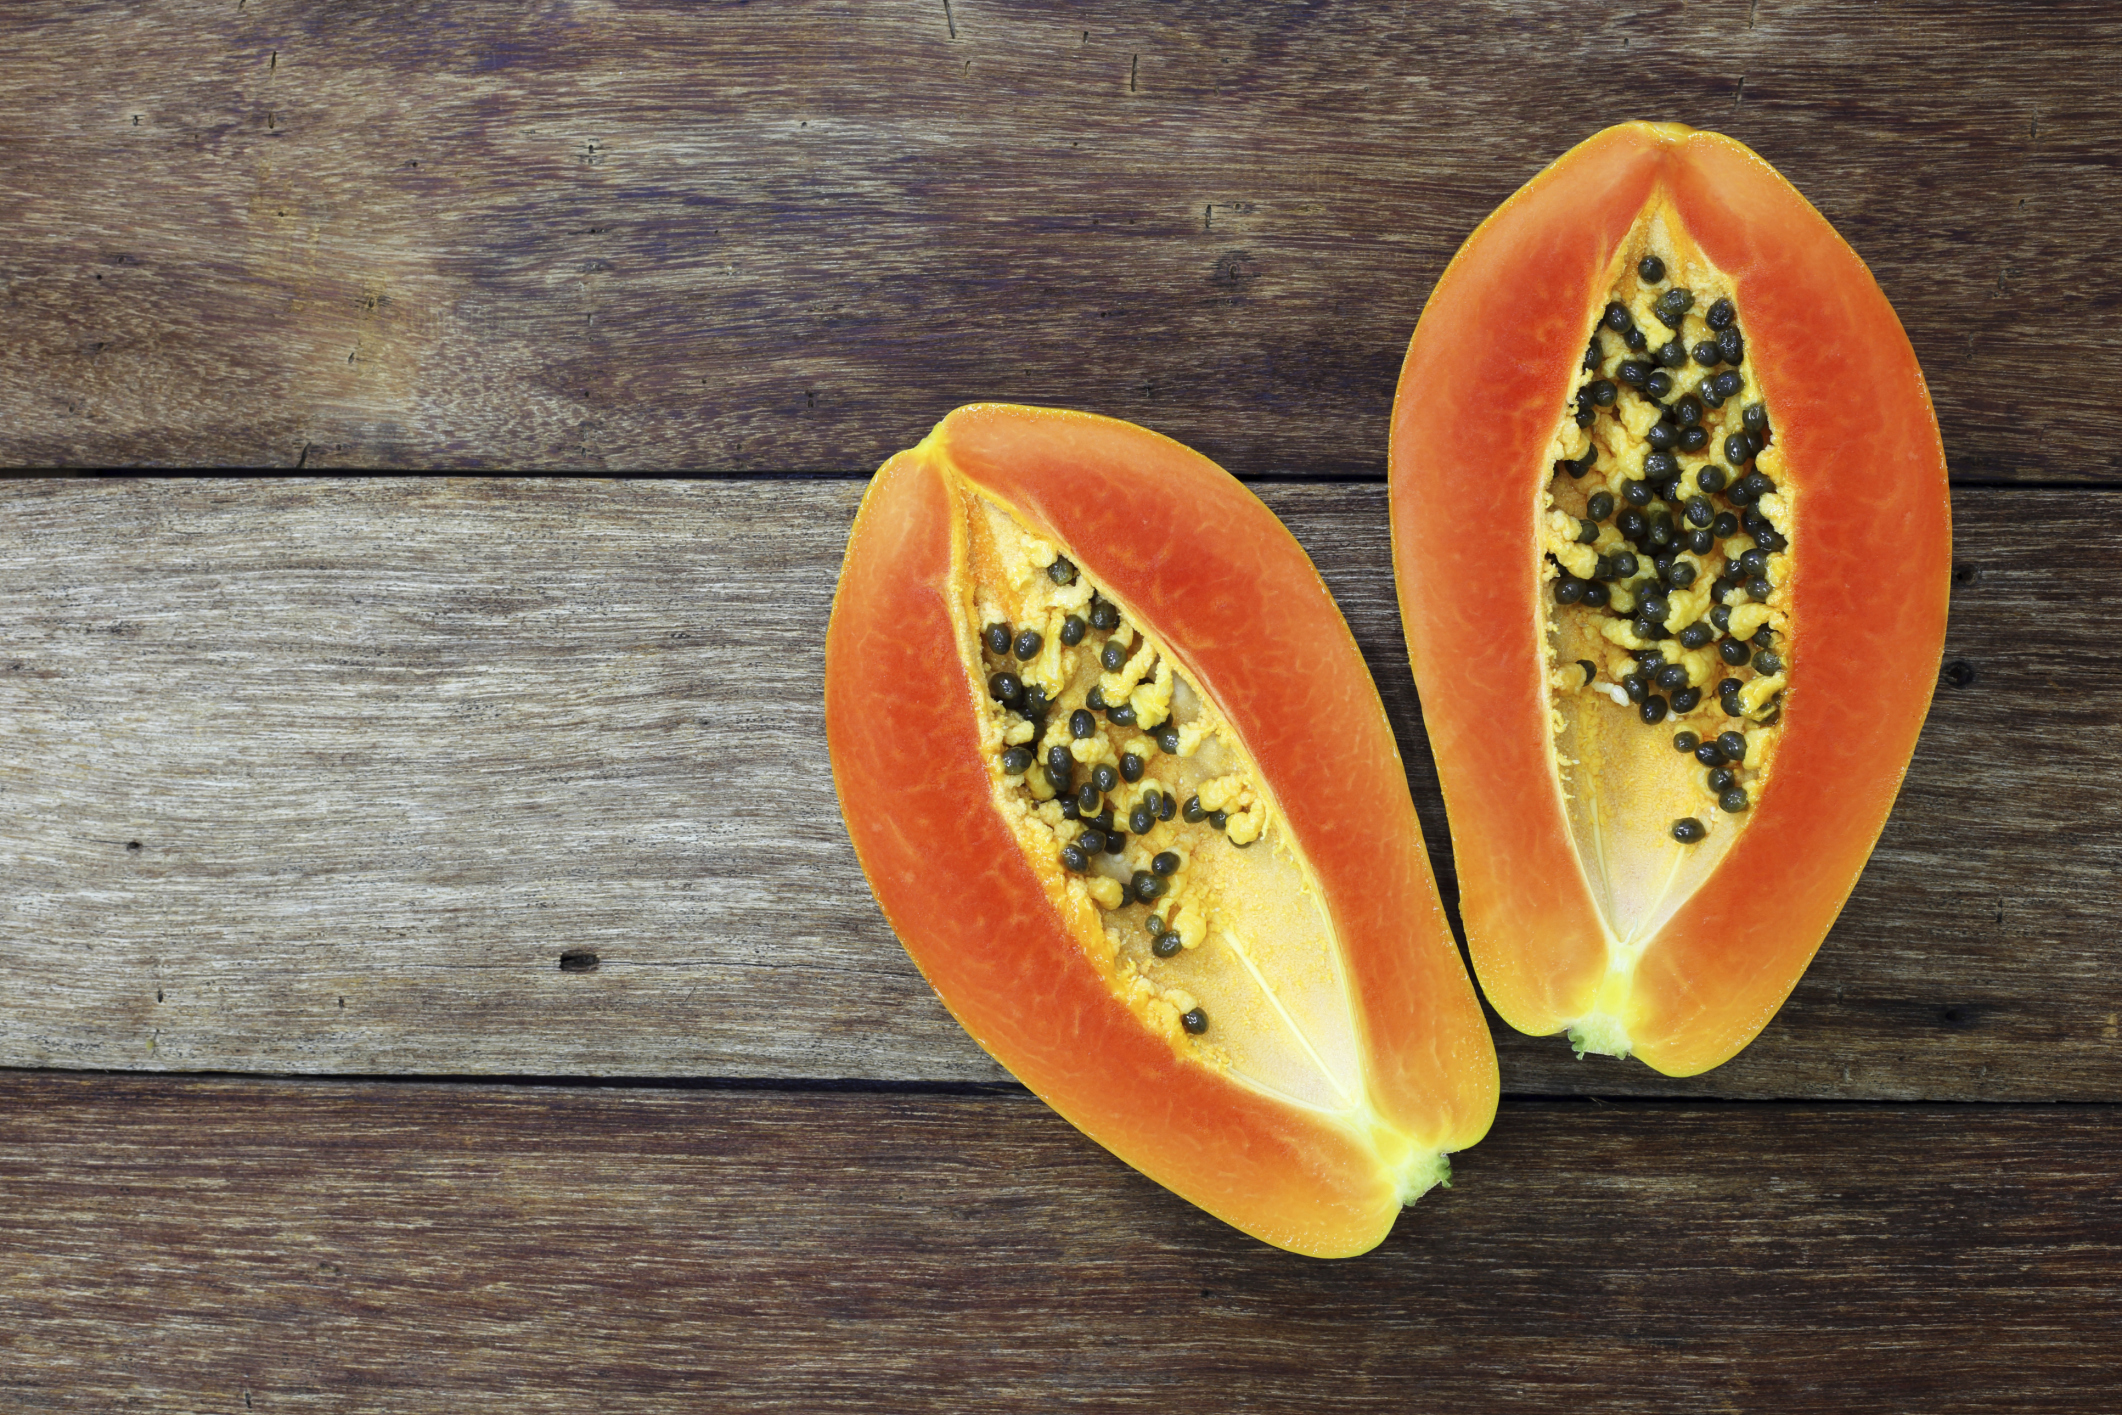 Papaya on table - proteolytic enzyme supplements